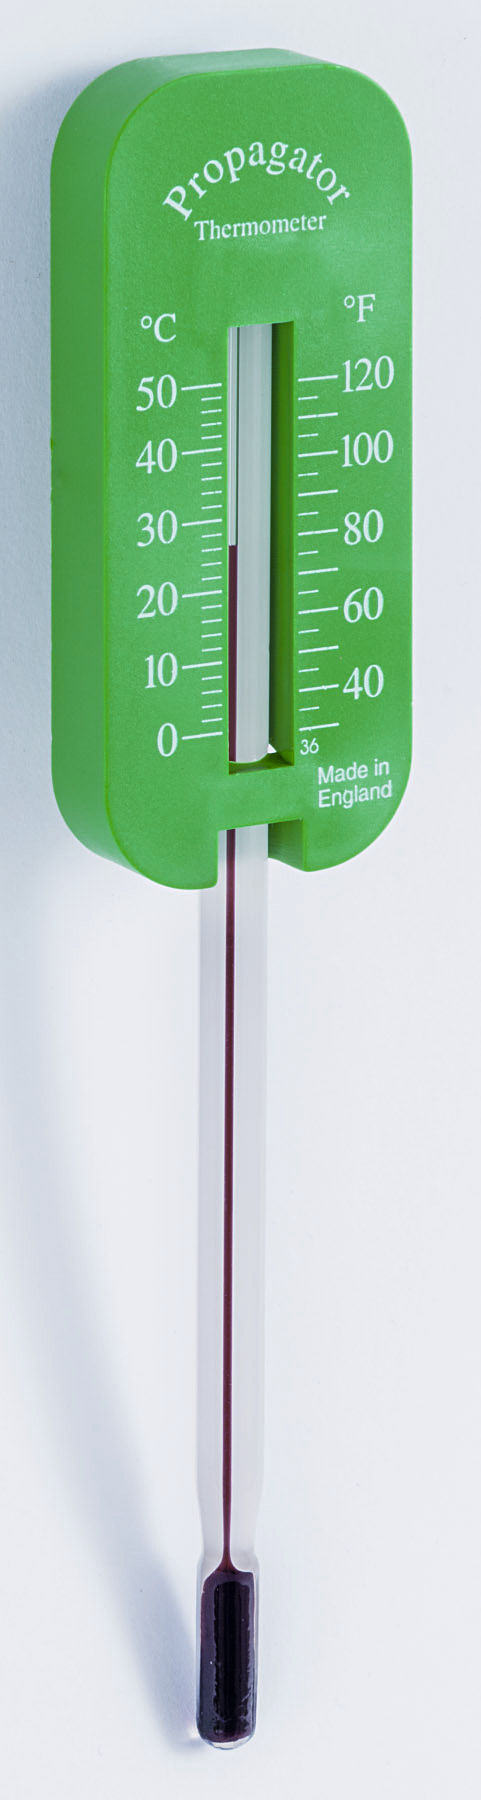 Seed Propagation & Soil Thermometer